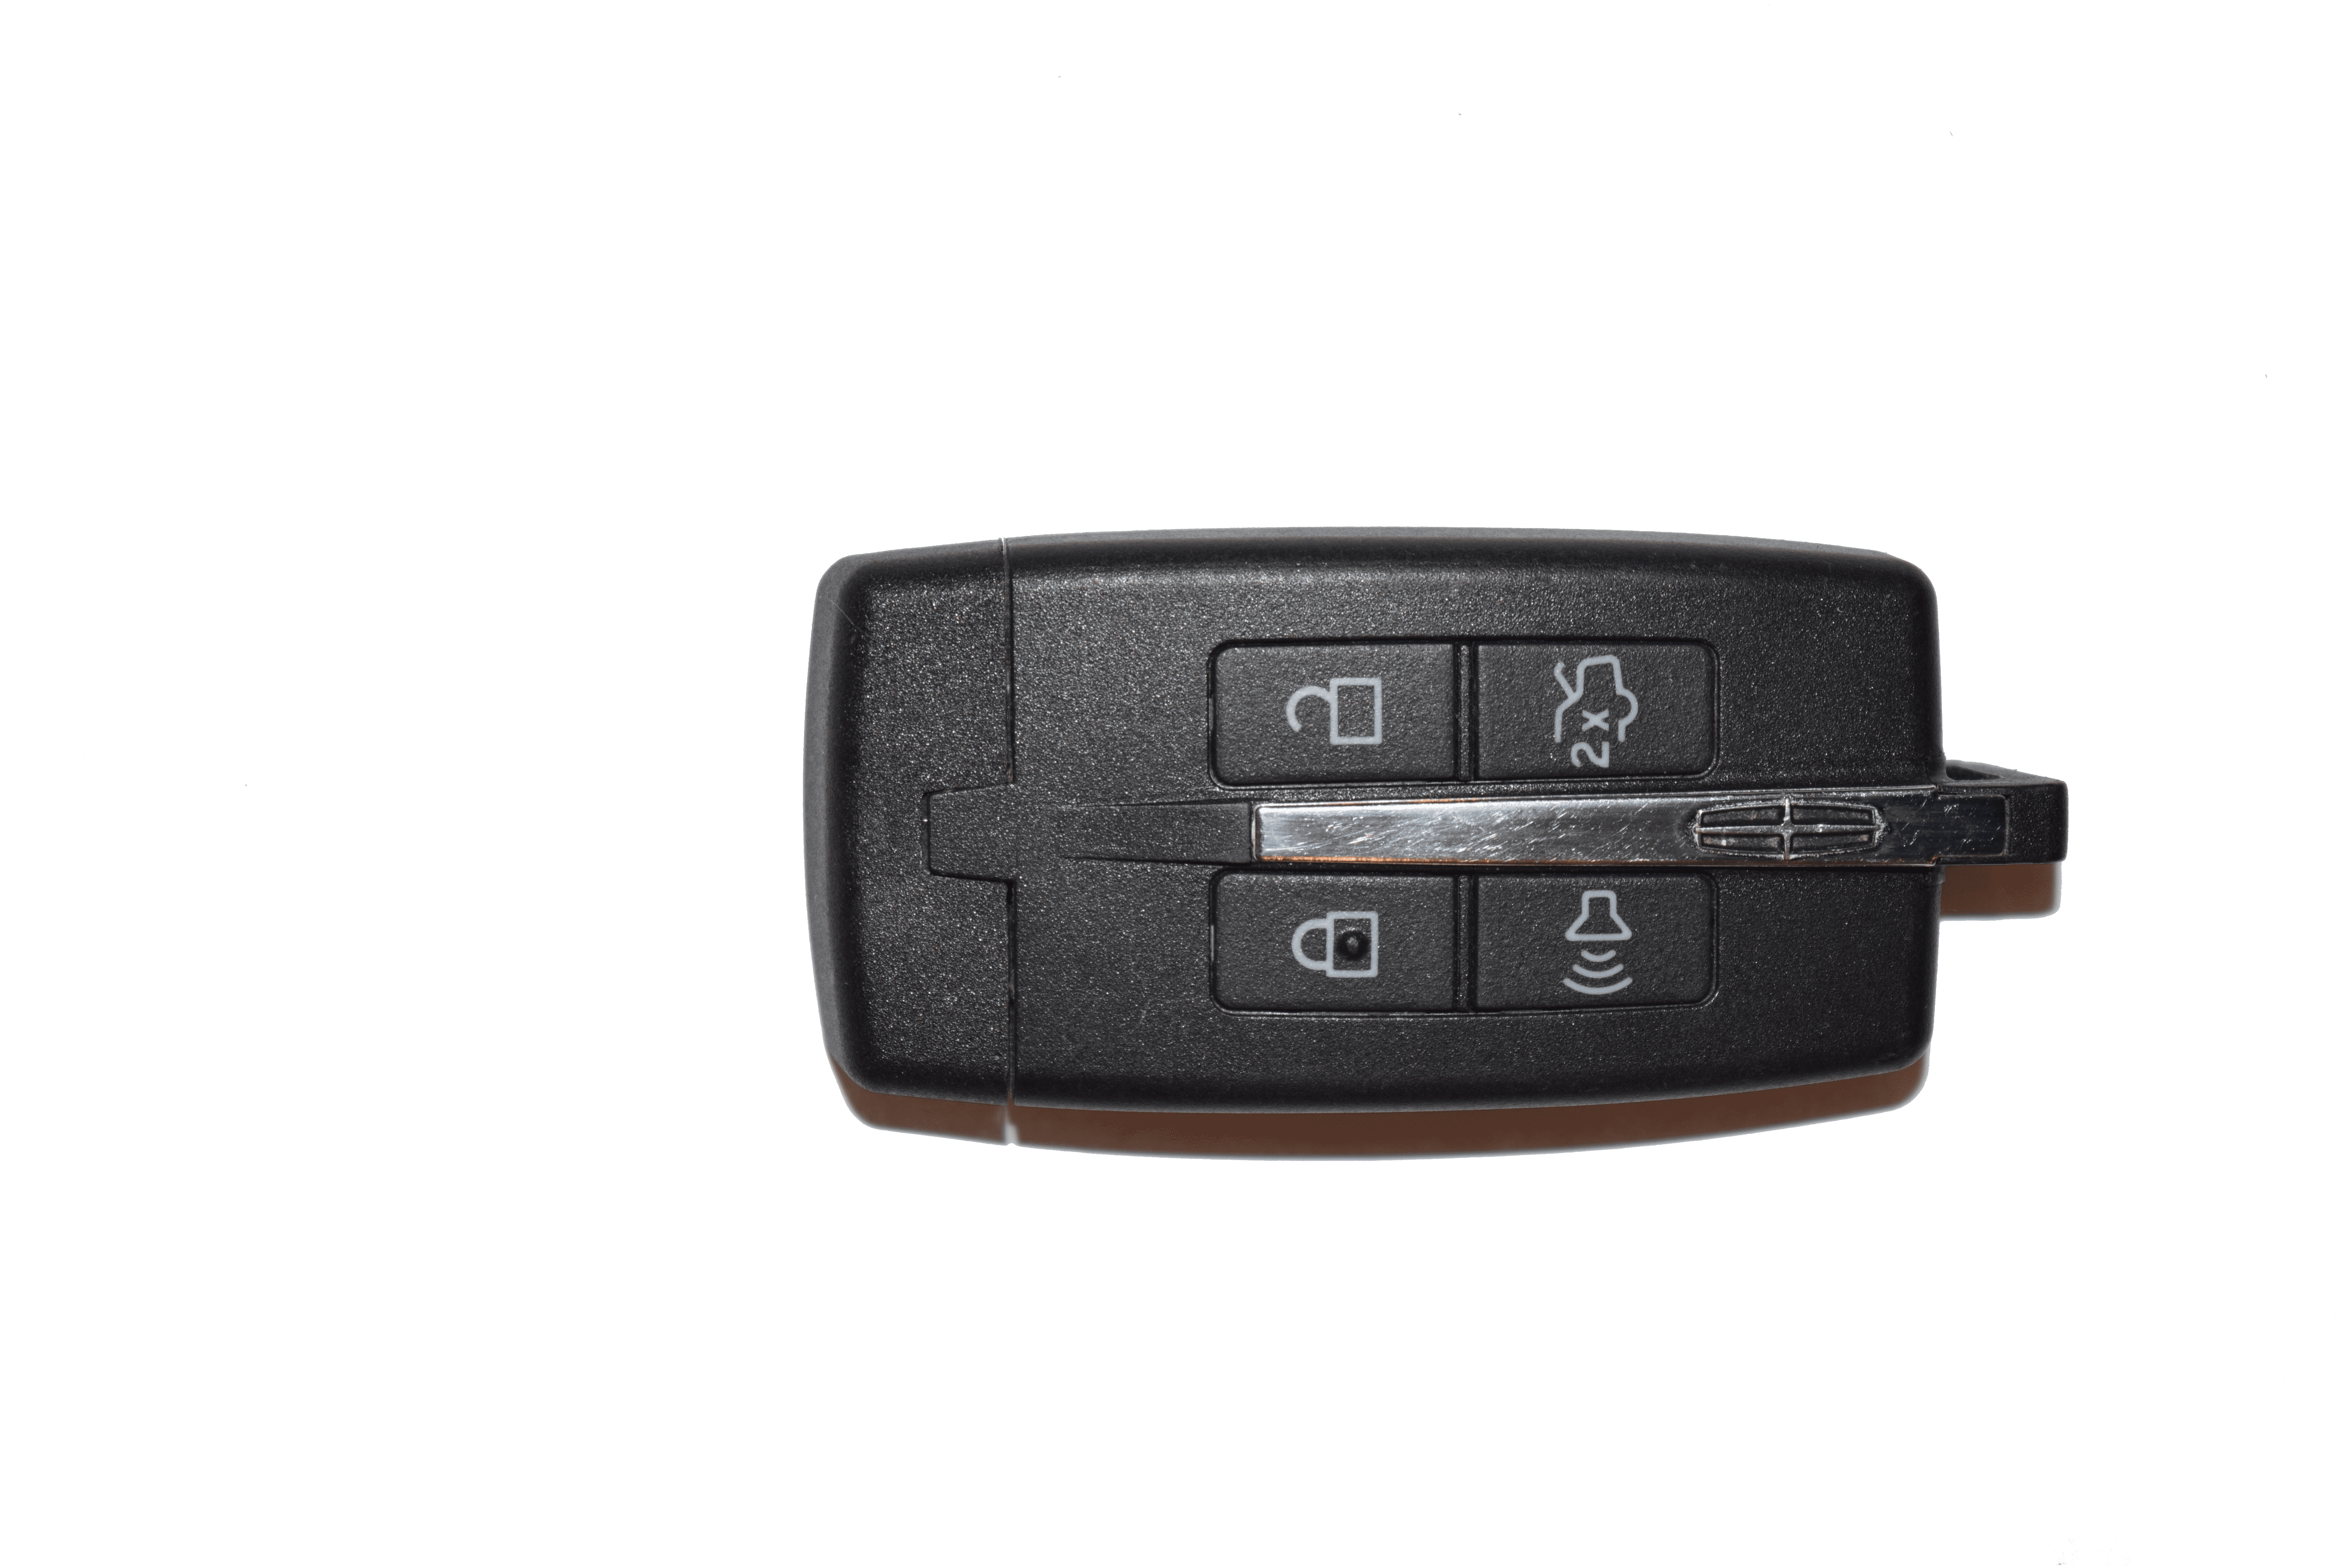 APEX Locksmith, APEX Denver Locksmith, Denver Locksmith, Ford Car Key Replacement, Lost Ford Car Keys